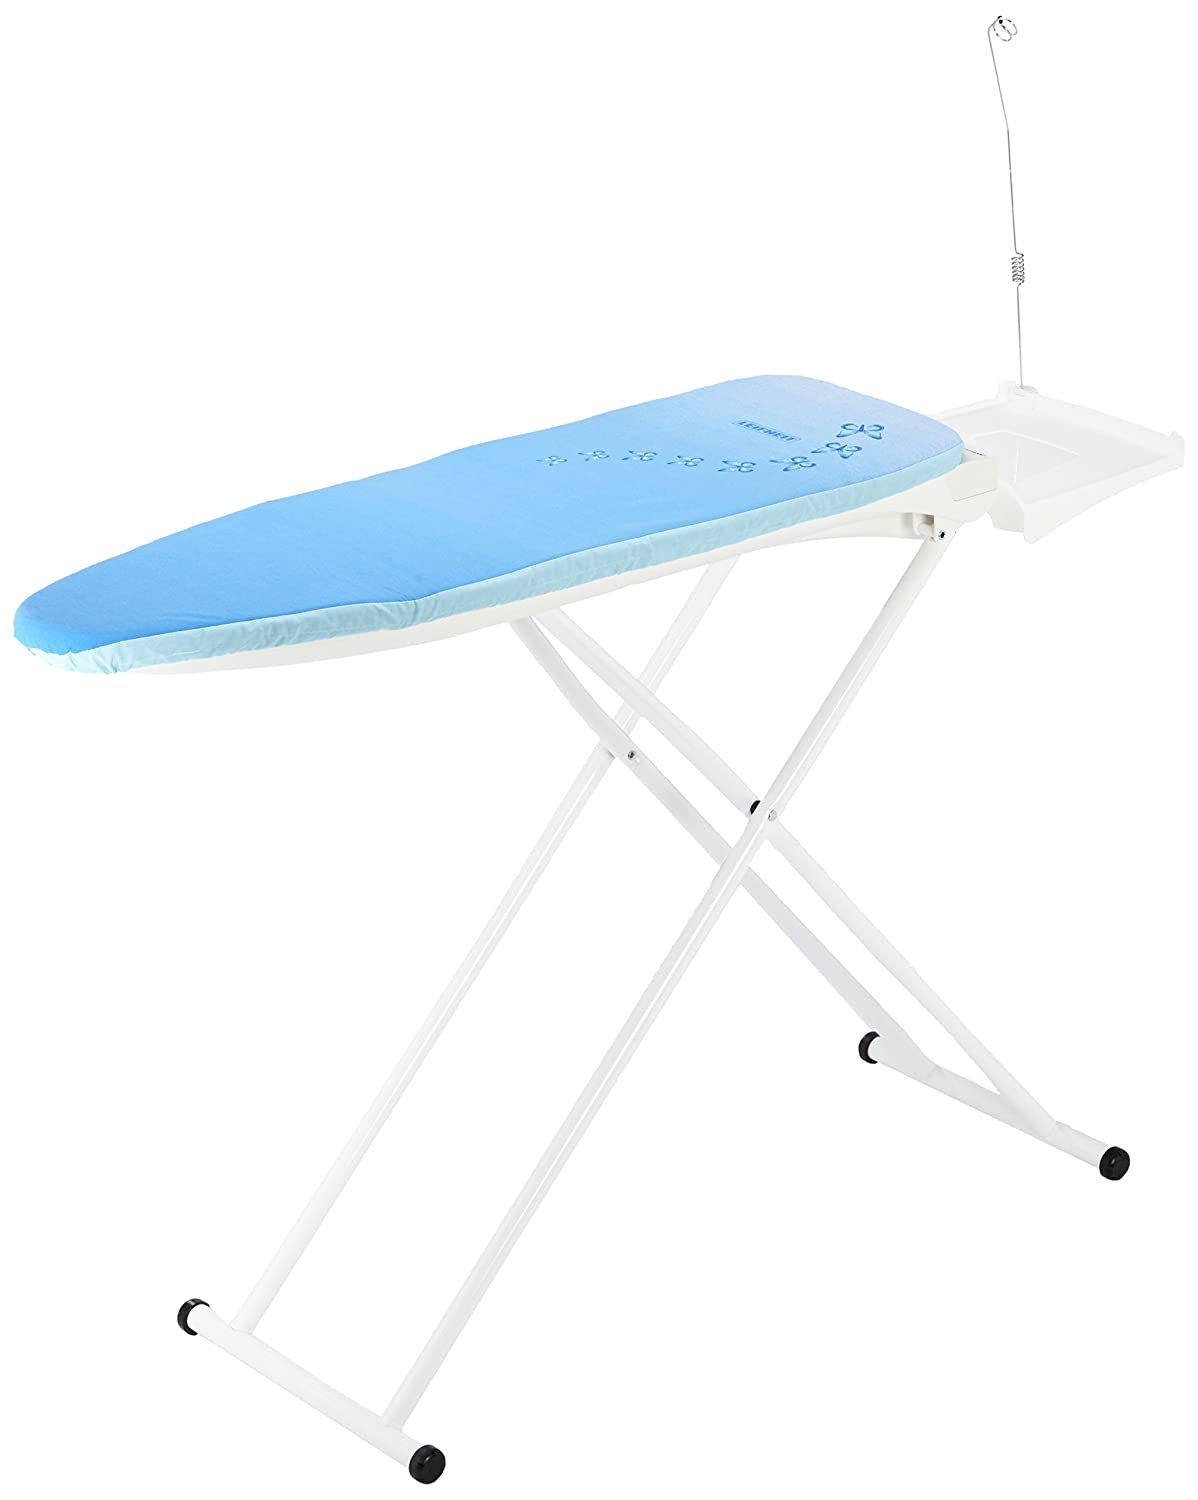 Leifheit Ironing Table AirActive M, Ironing Board, Active Functions, Large Iron Rest with Electricit